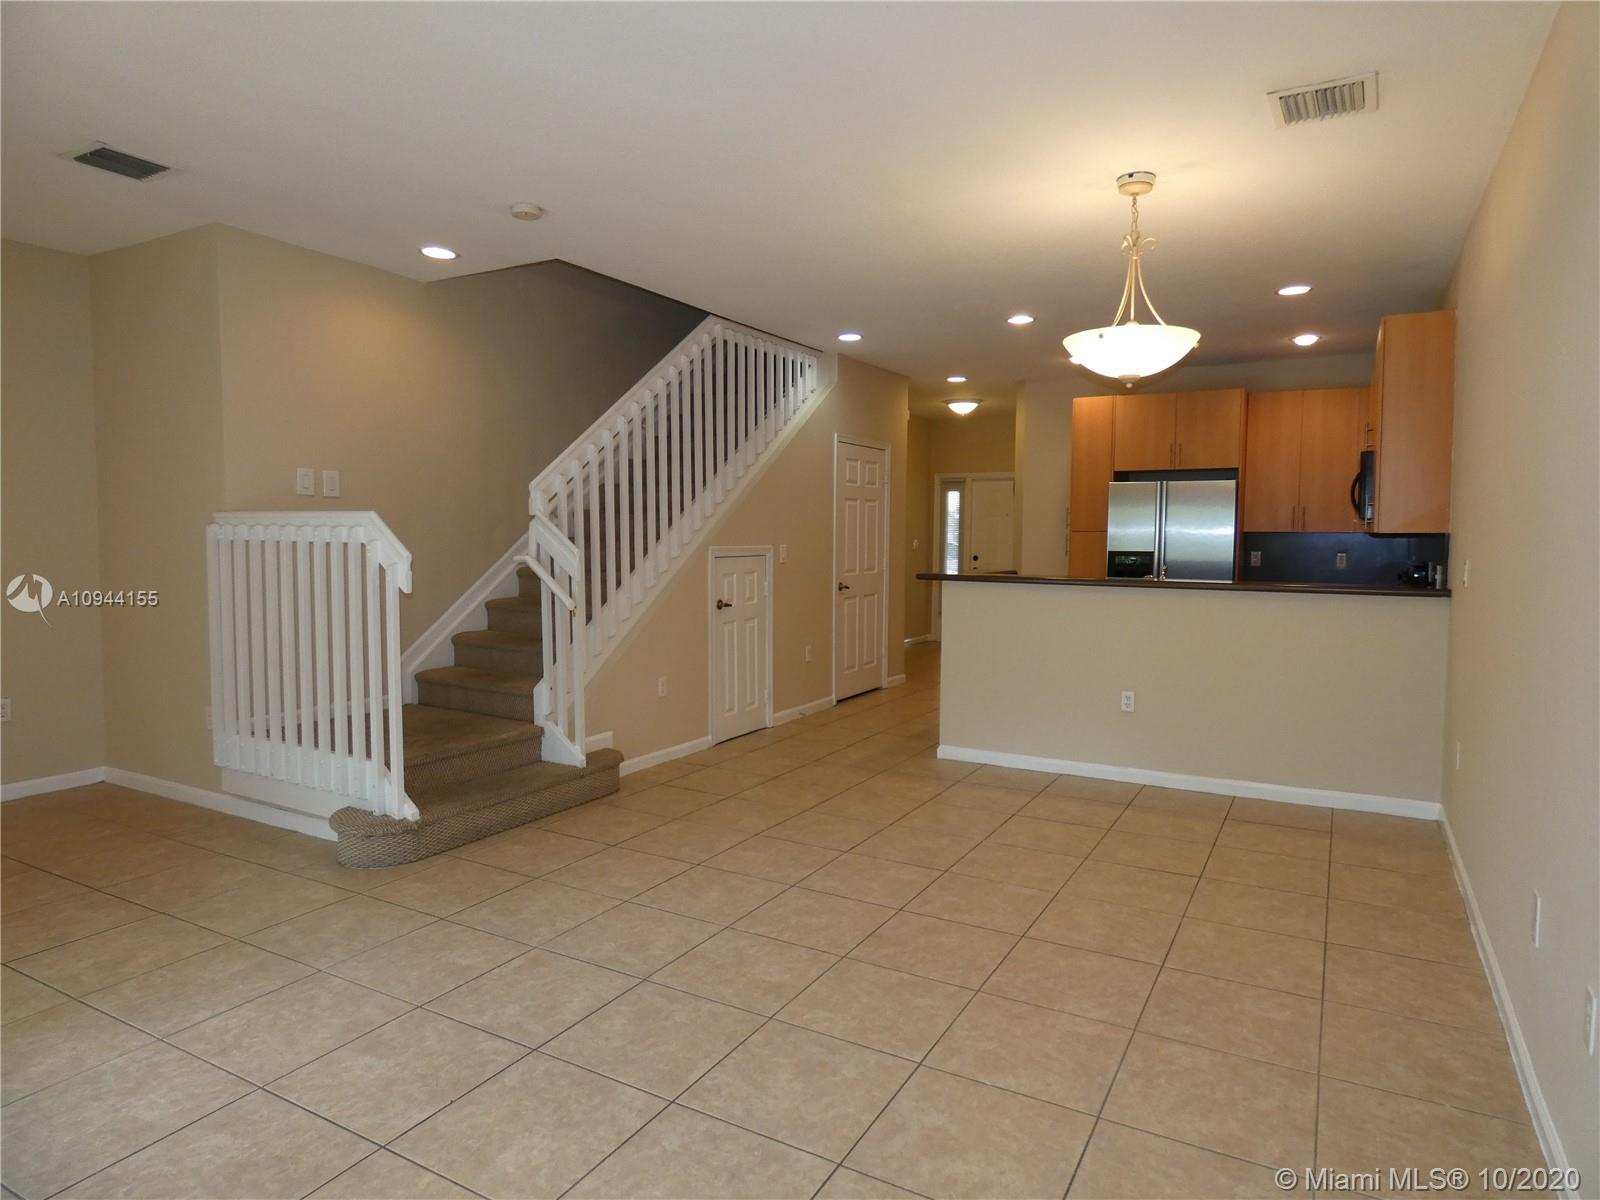 Two-story 3 Bed /2.5 Bath townhouse in a safe and quiet gated community.  1 car garage.  Built in 2008 and has Impact windows and doors.  Stainless steel kitchen appliances and full size washer and dryer.  Tile and laminate wood plank flooring throughout.  OK to lease immediately. This gated community has low maintenance fees and a beautiful community pool.  Located within a short distance from the beach, shopping, and downtown Fort Lauderdale!